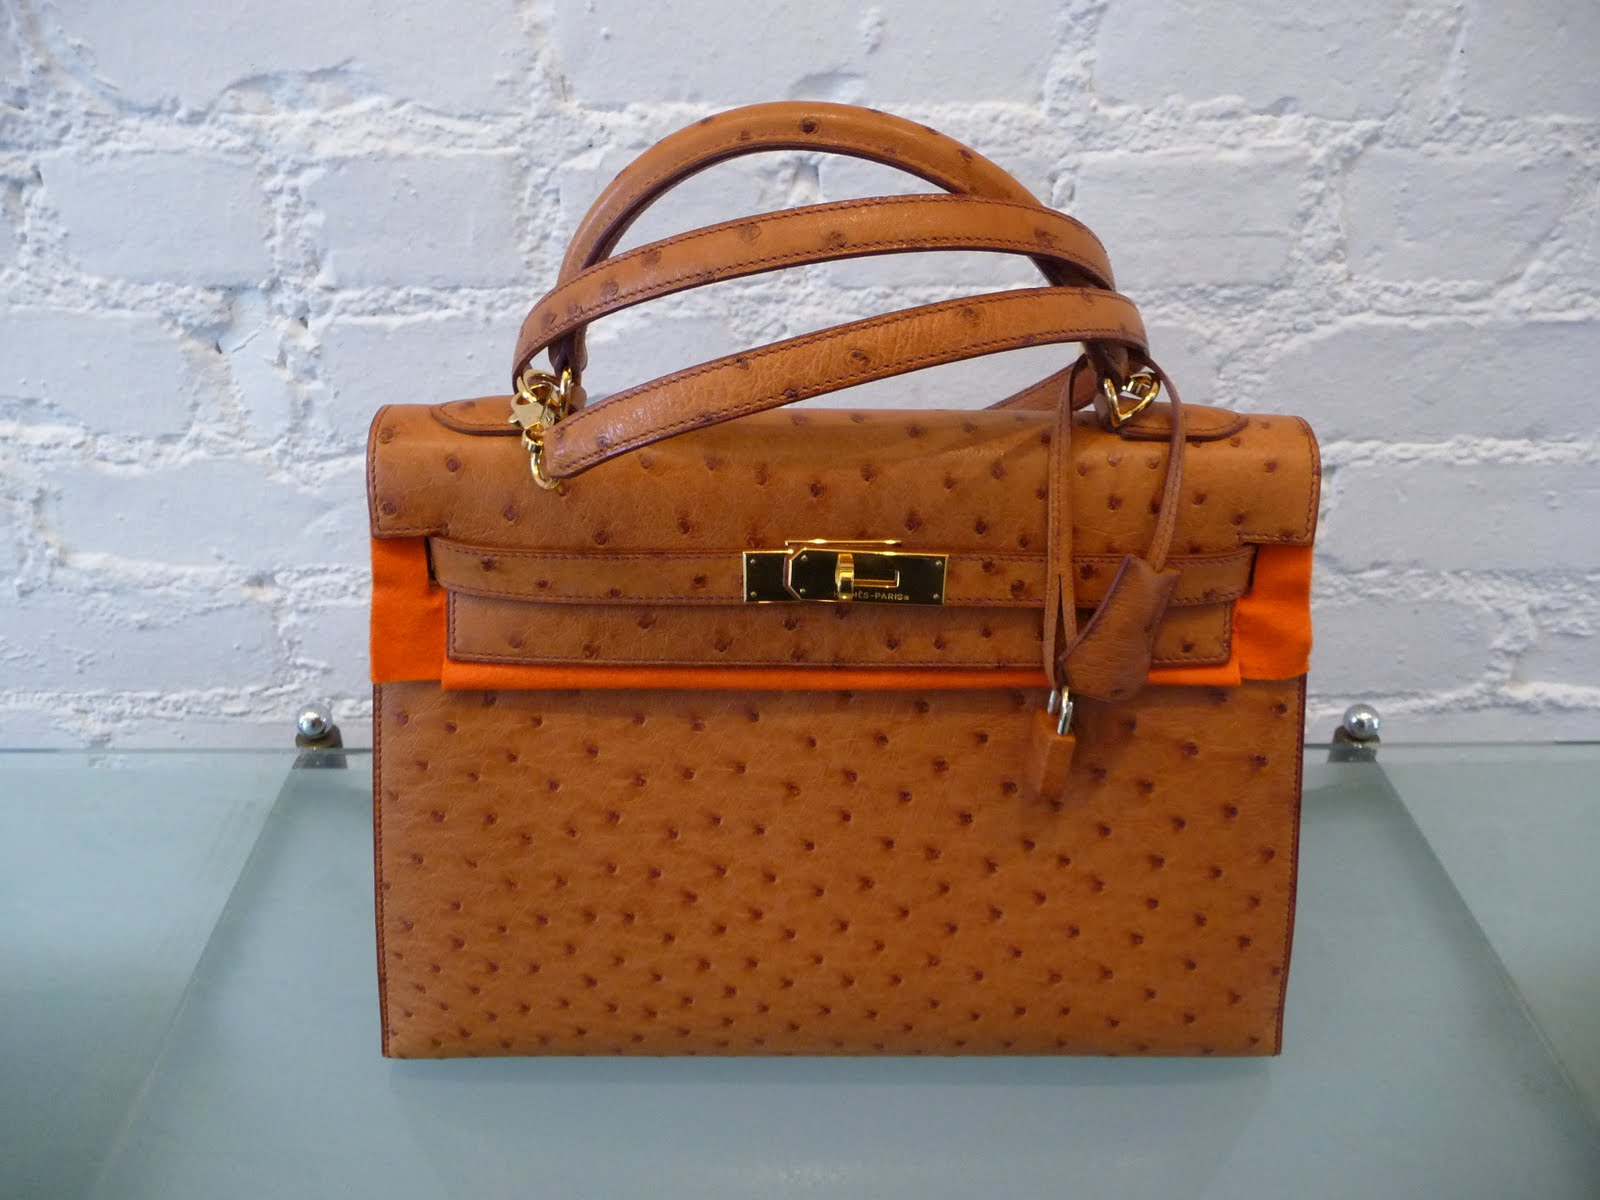 9b16a698d1c7  Daniel  Hermes 32cm ostrich gold Kelly with gold hardware